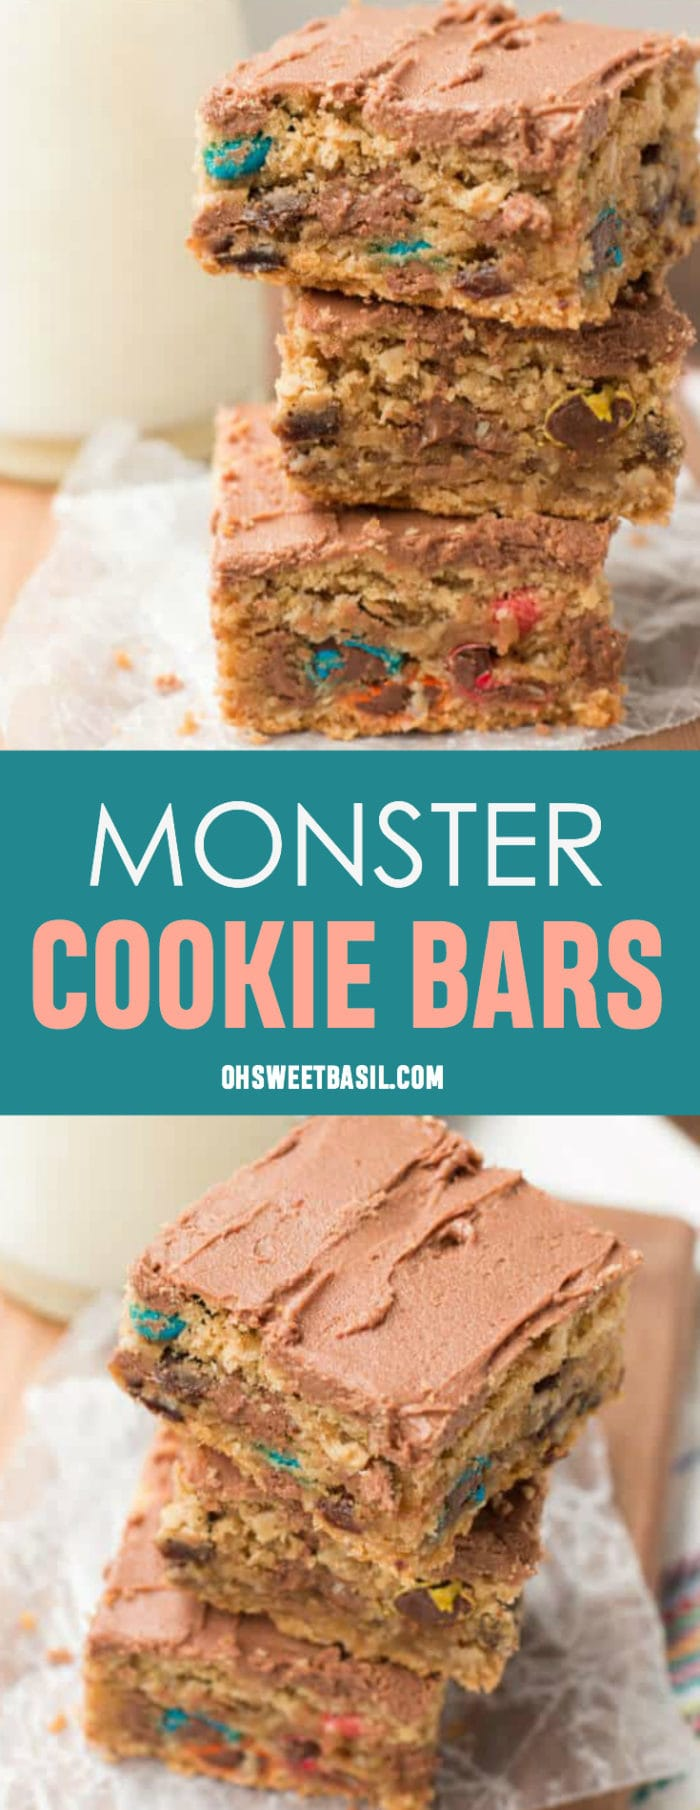 A stack of the best Monster Cookie Bars with M&M's and chocolate frosting